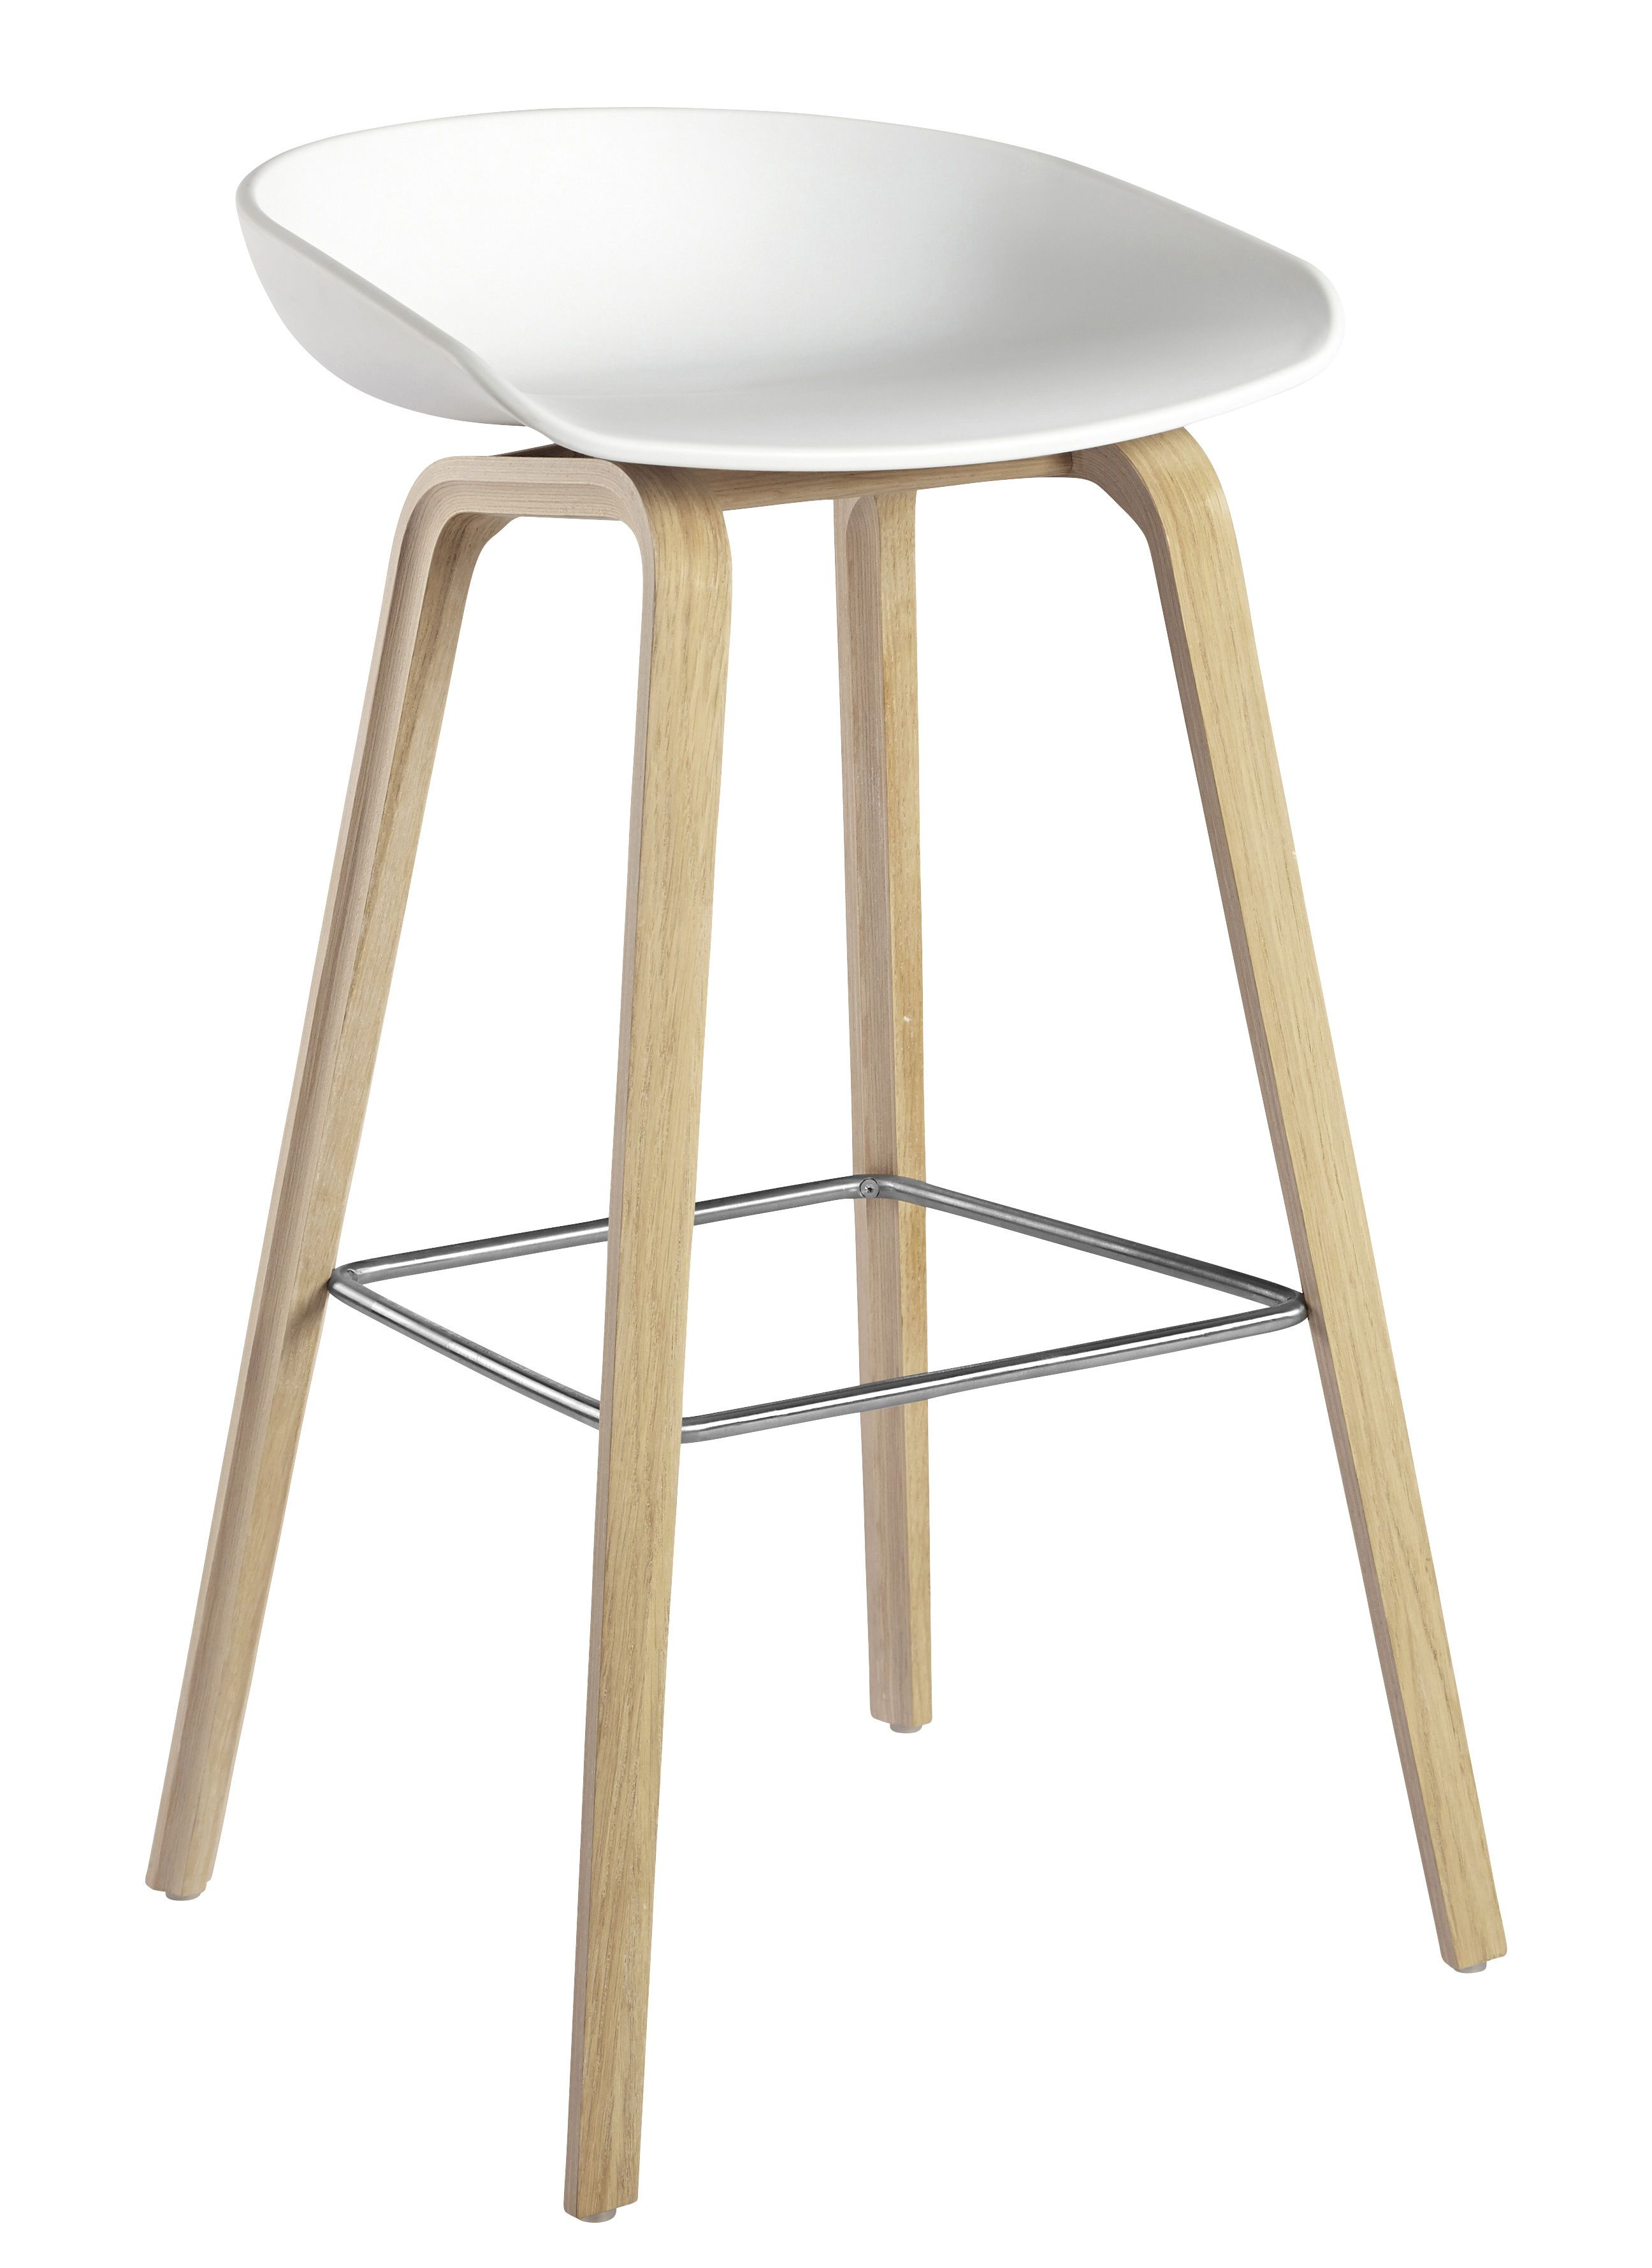 About A Stool Bar H 75 Cm Plastic Wood Legs White Natural Base By Hay